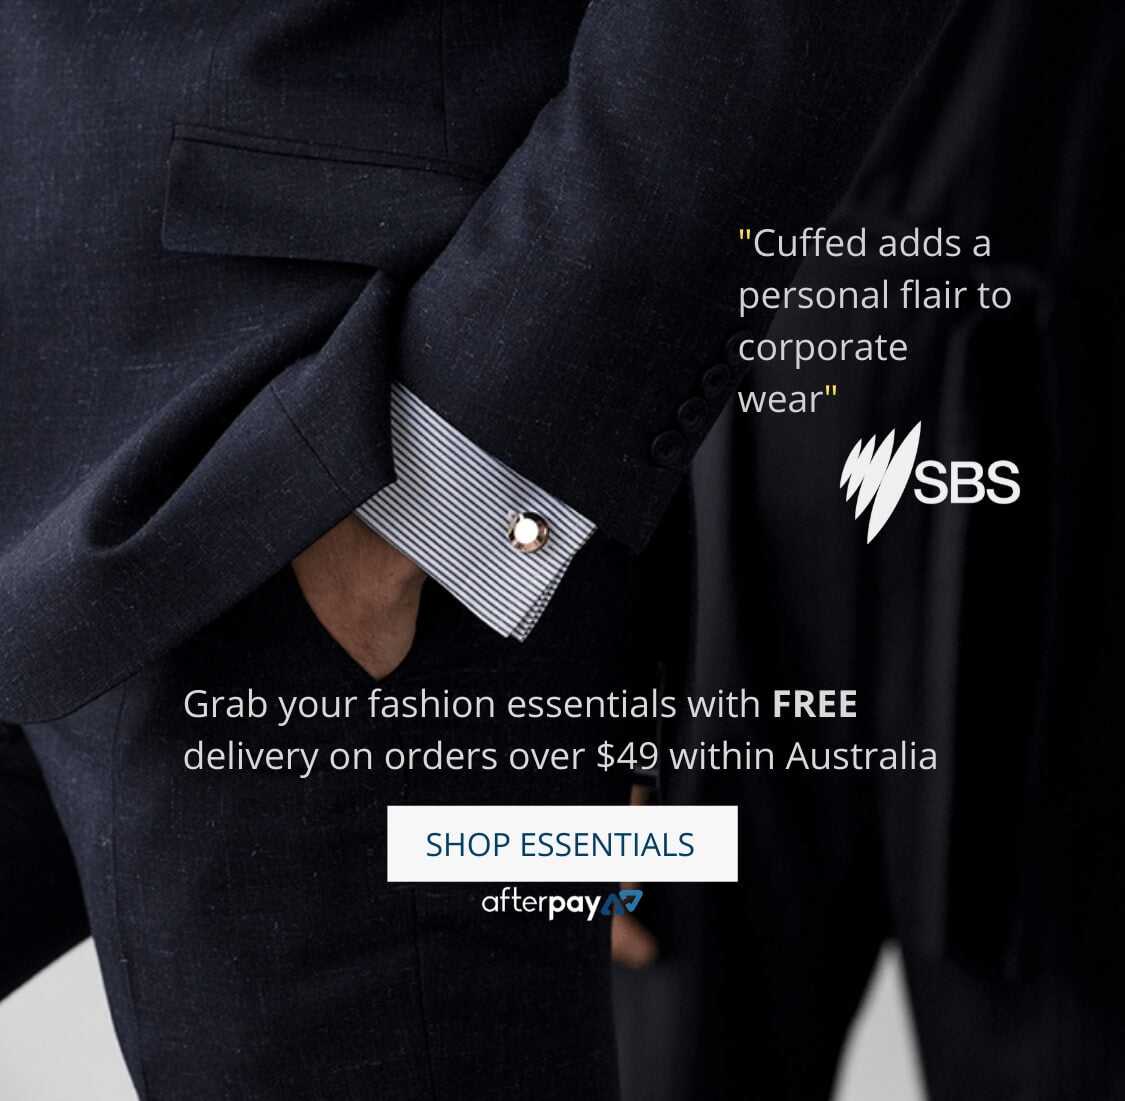 Unique cufflinks on Cuffed, tie clips, cufflink boxes, watch winders and gifts. Buy mens silver cufflinks, gold cufflinks, wedding cufflinks, fun cufflinks, novelty cufflinks and classic cufflinks at Cuffed.com.au